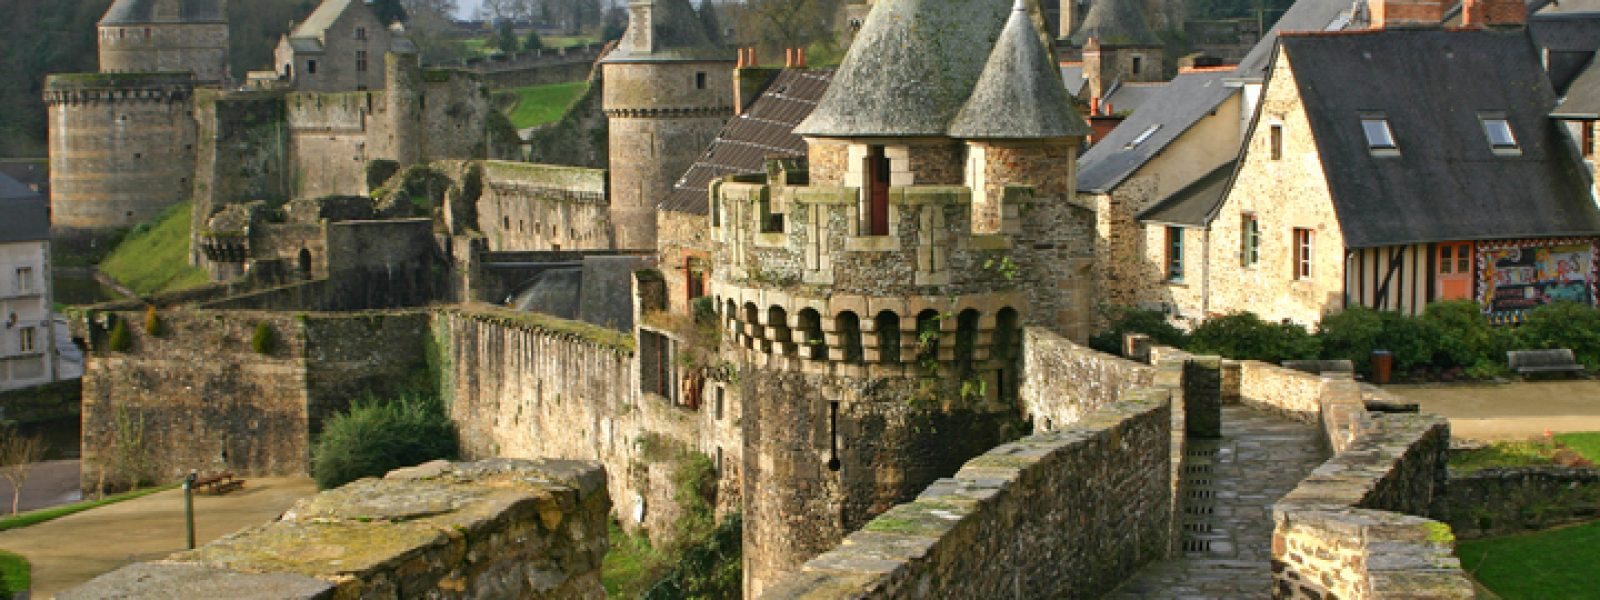 Fougeres-chateau-fort